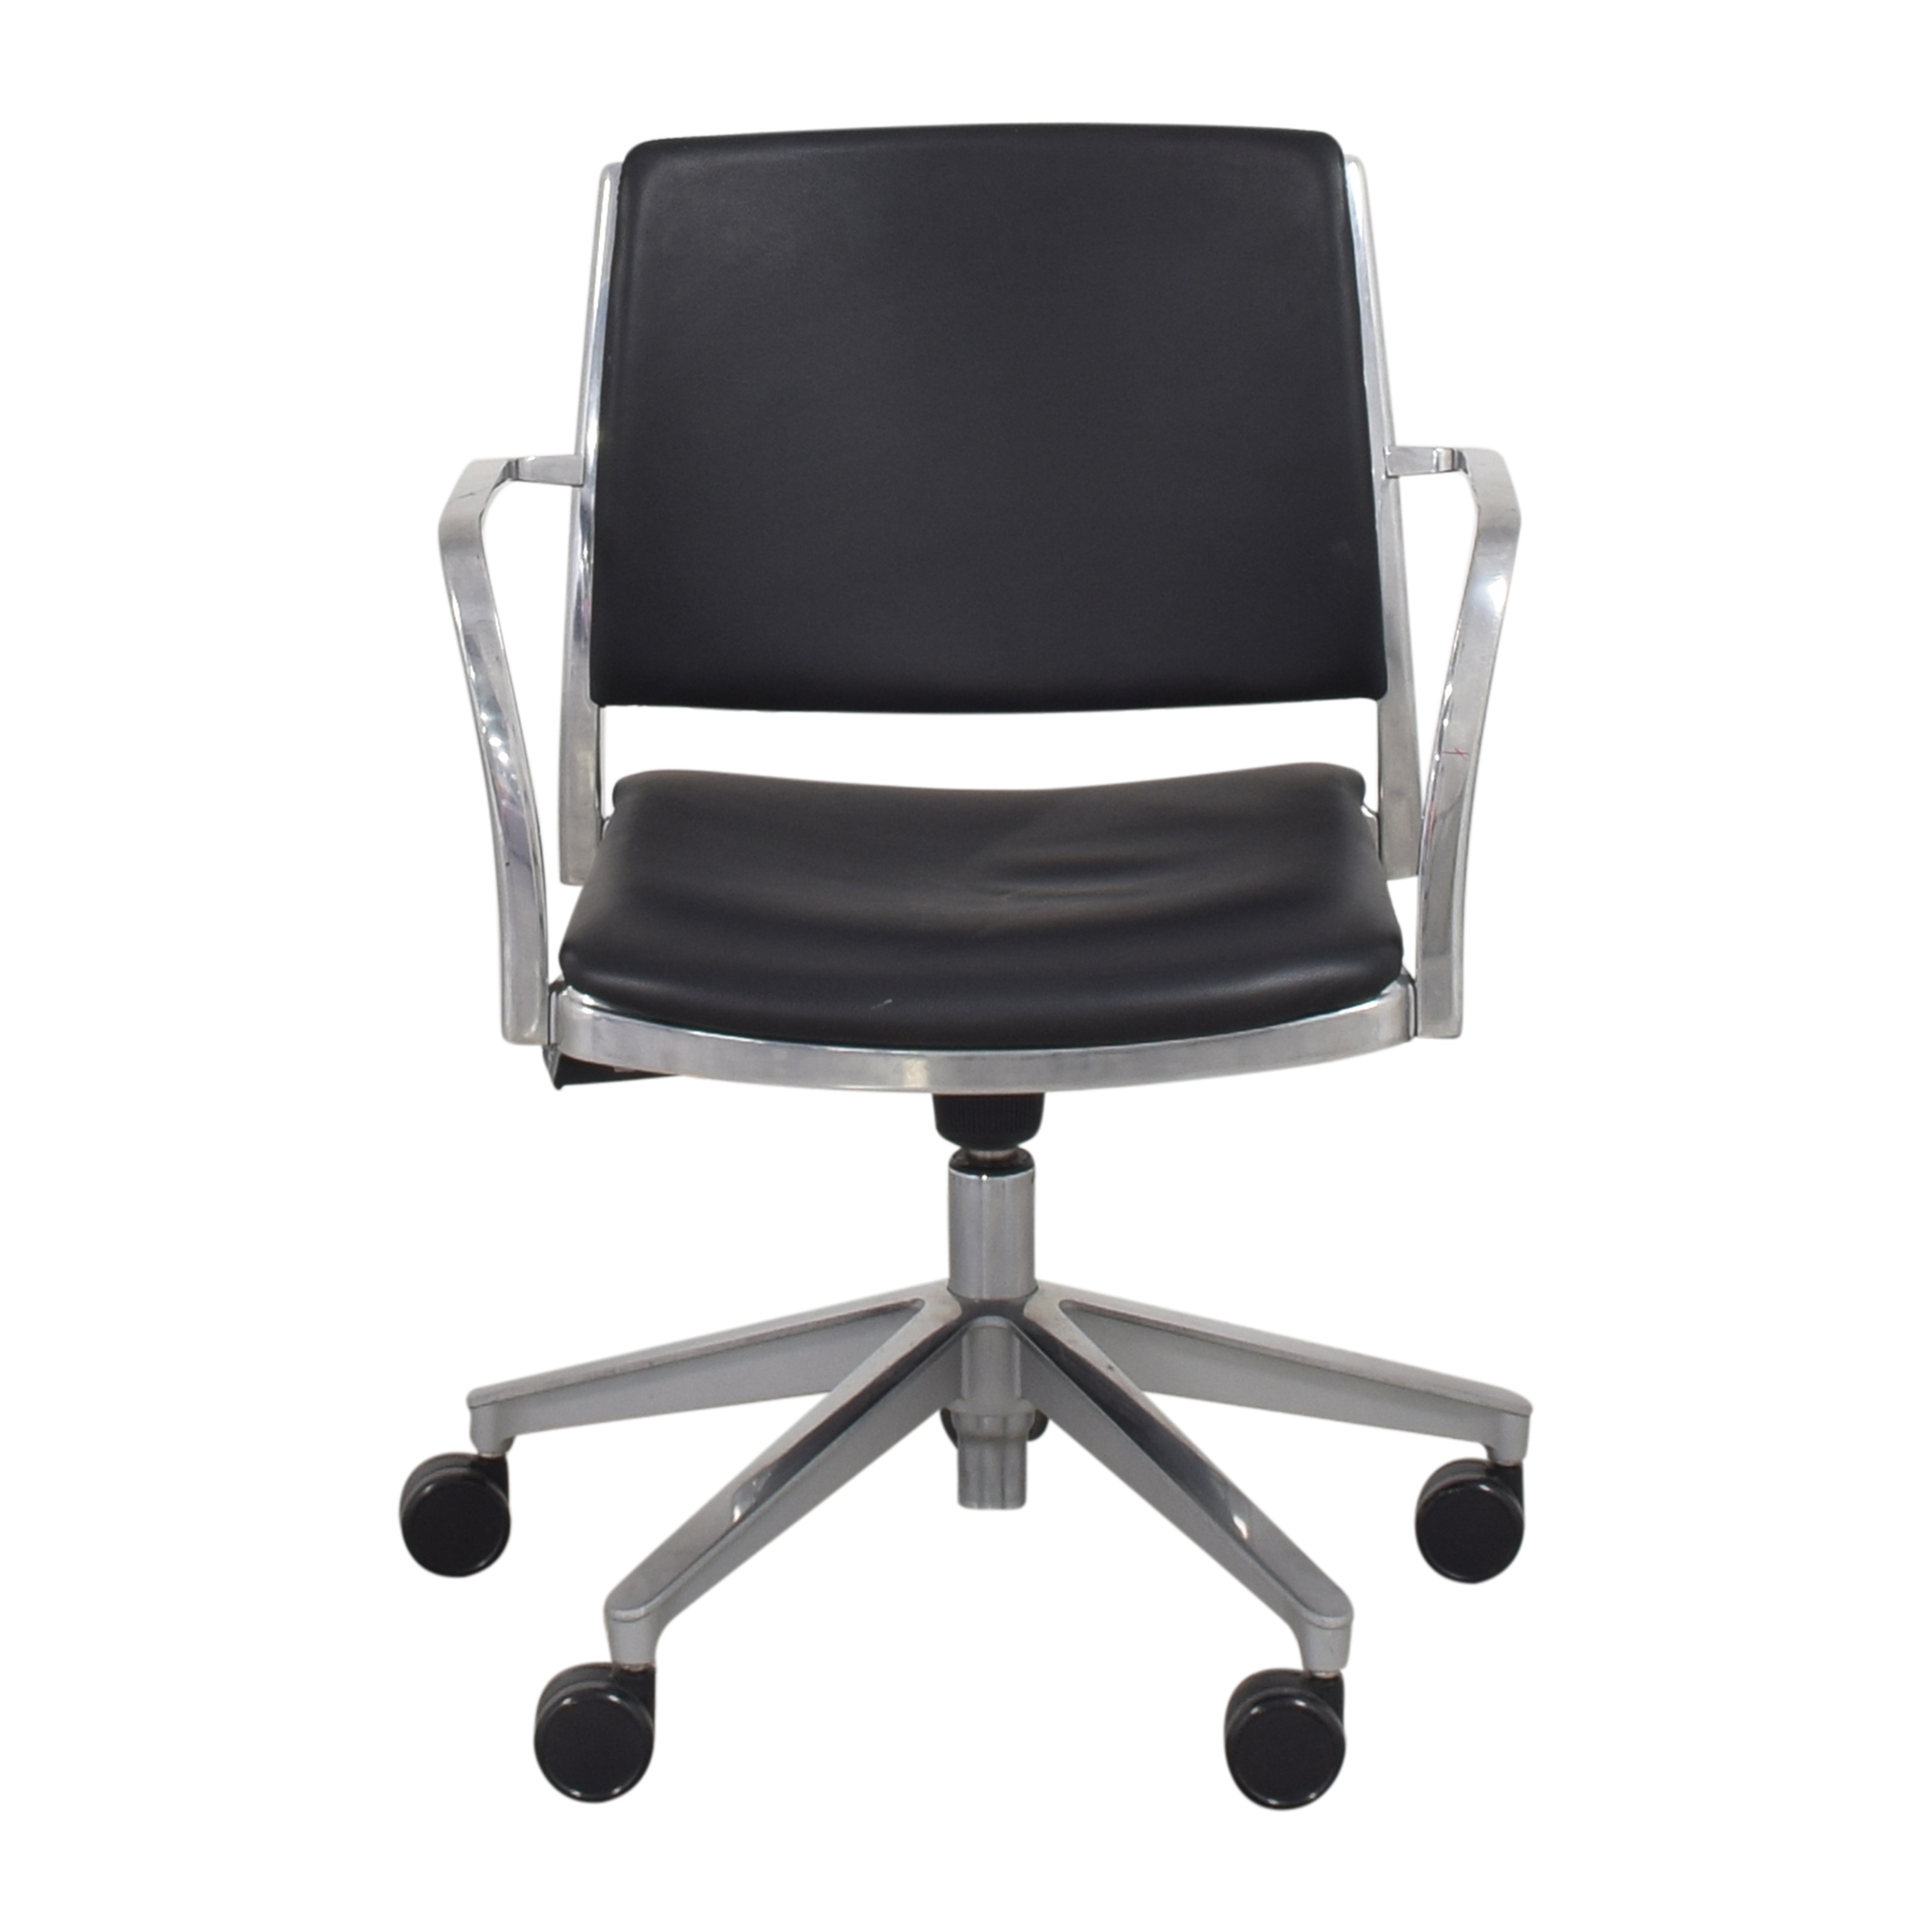 Krug Corfu Tilter Chair / Home Office Chairs